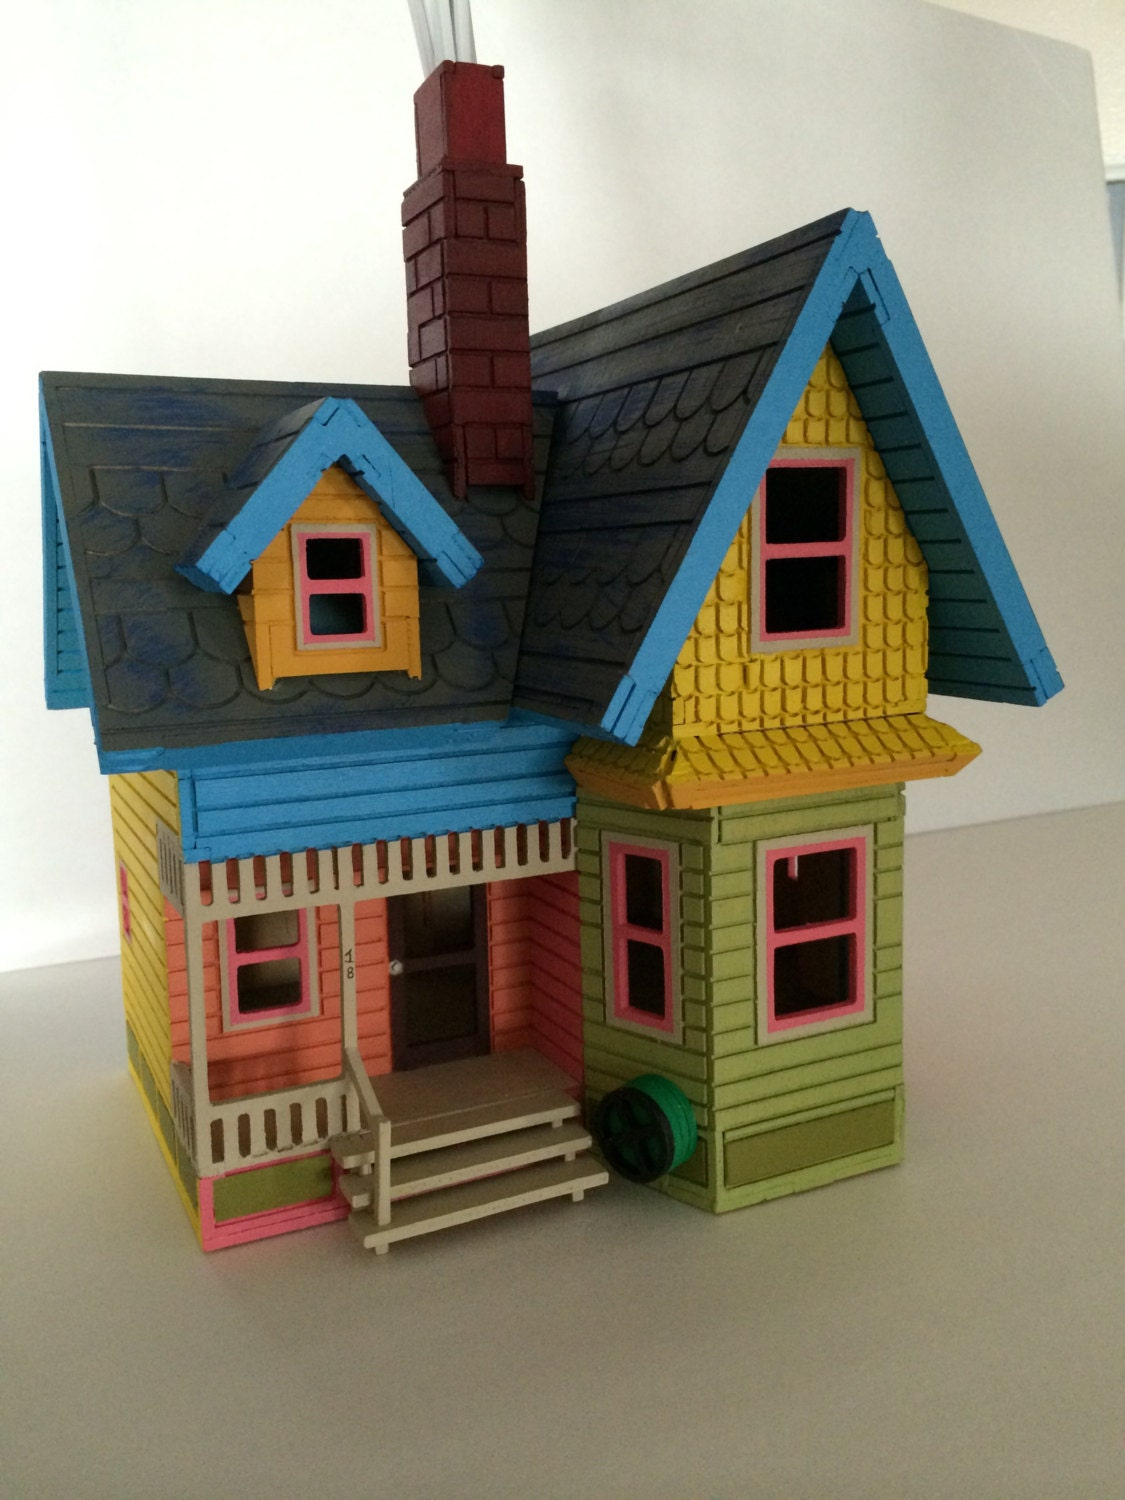 3d House Puzzle From The Movie Up From Disney By